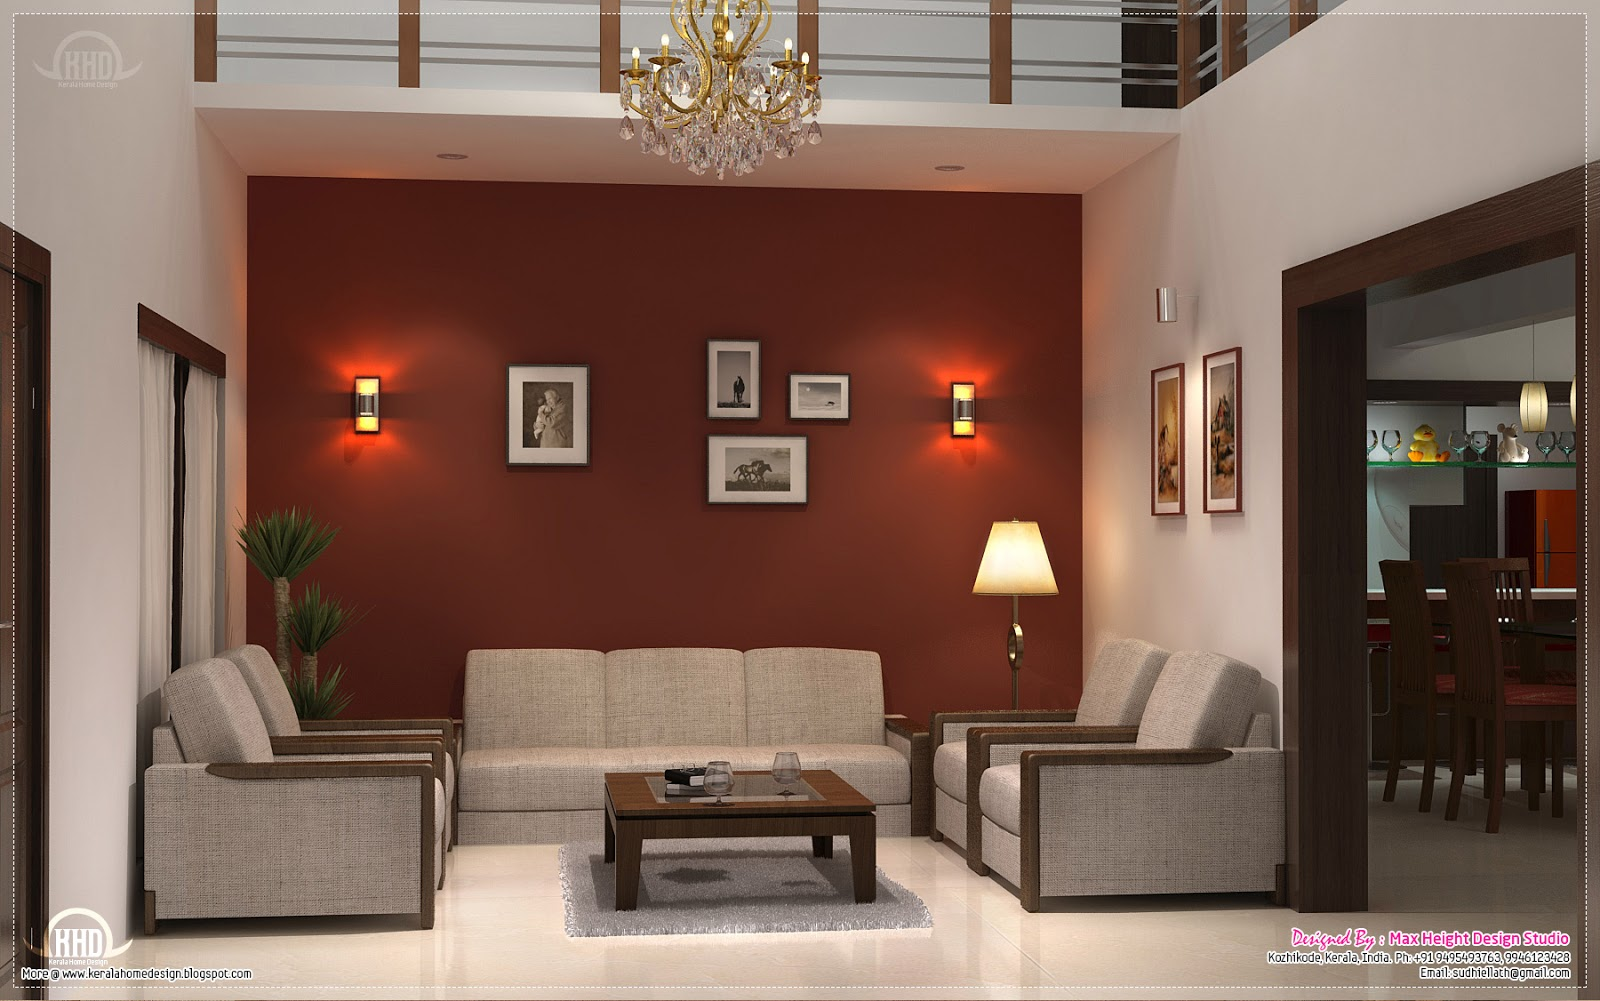 home interior design ideas kerala home design and floor On interior house designs in kerala